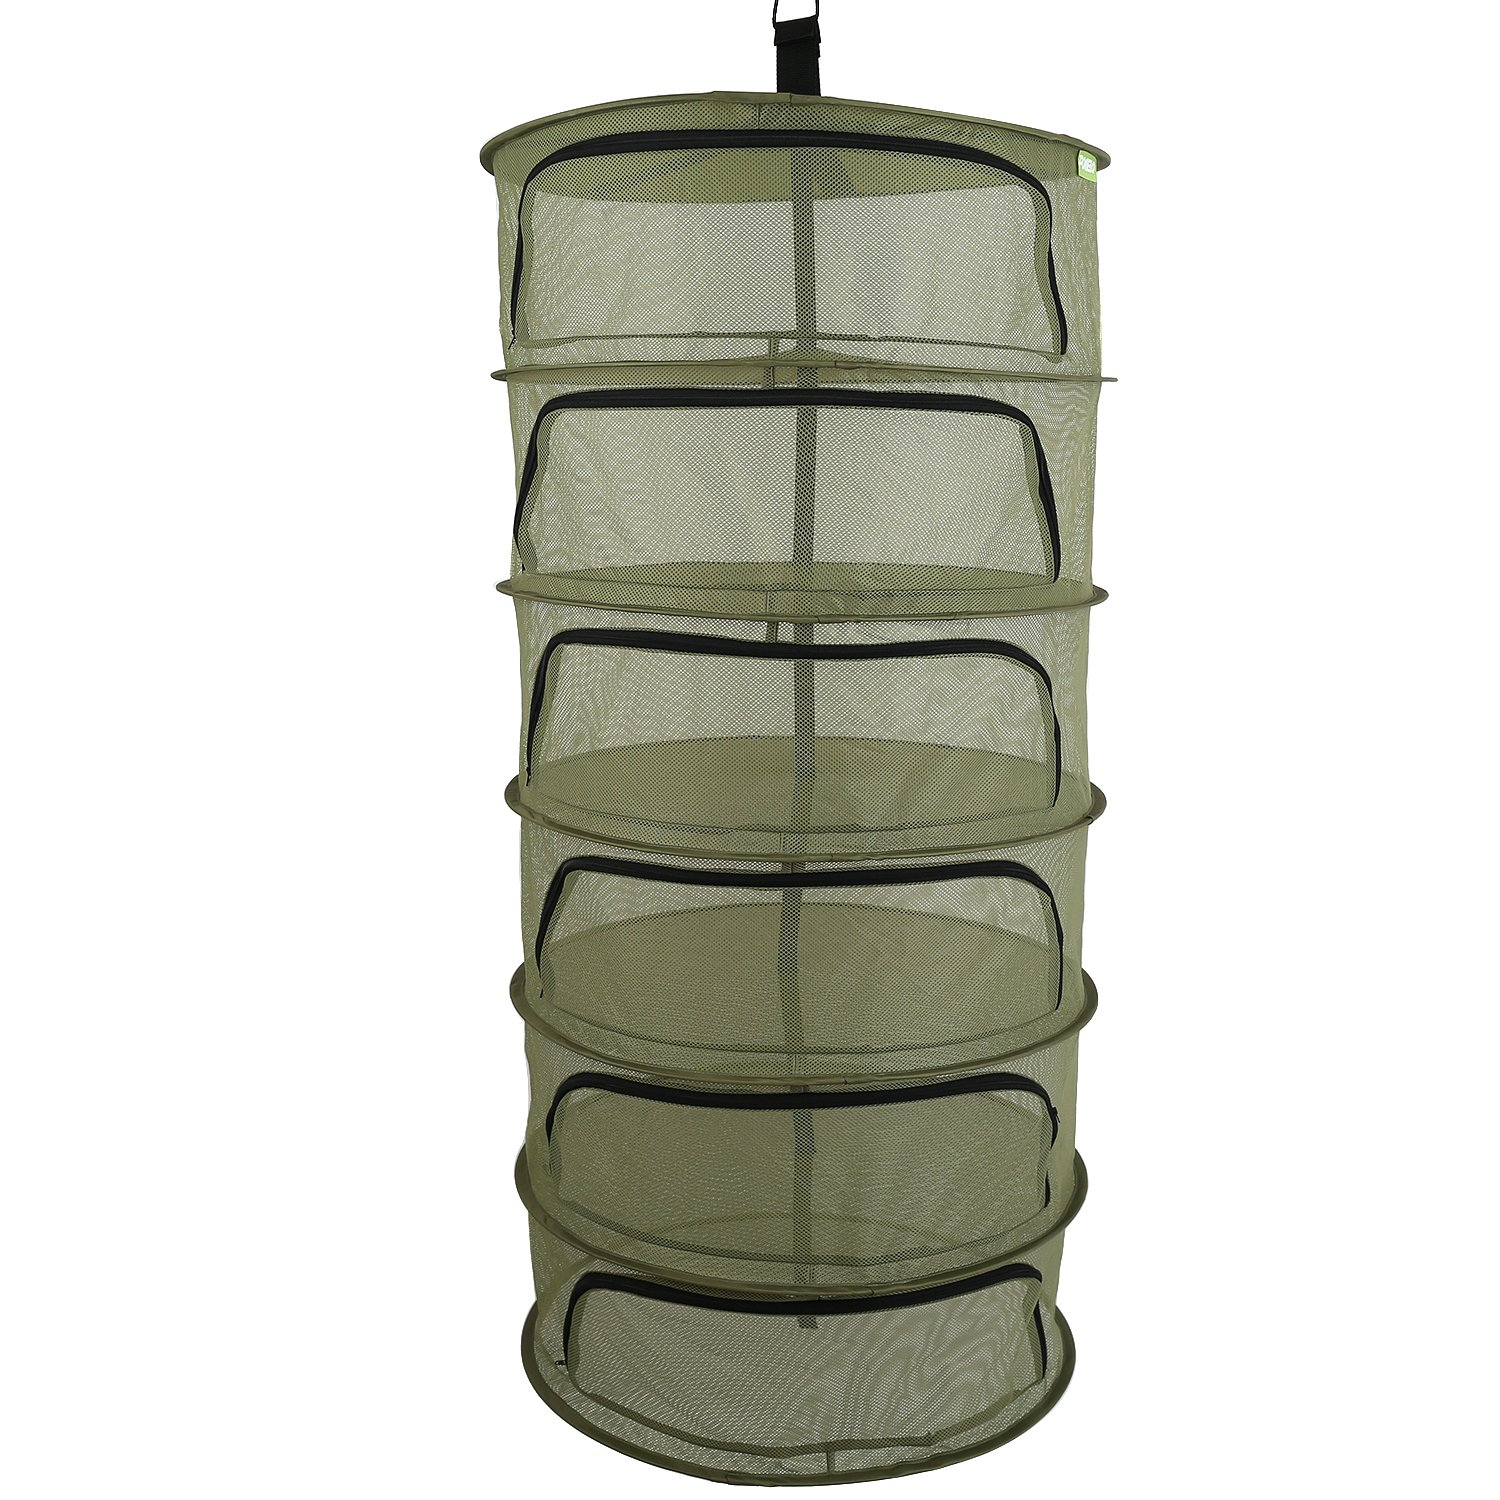 Ipomelo Hanging Herb Dring Rack Dry Net 2ft 6 Layer w/Zipper Opening Green Mesh by IPOMELO